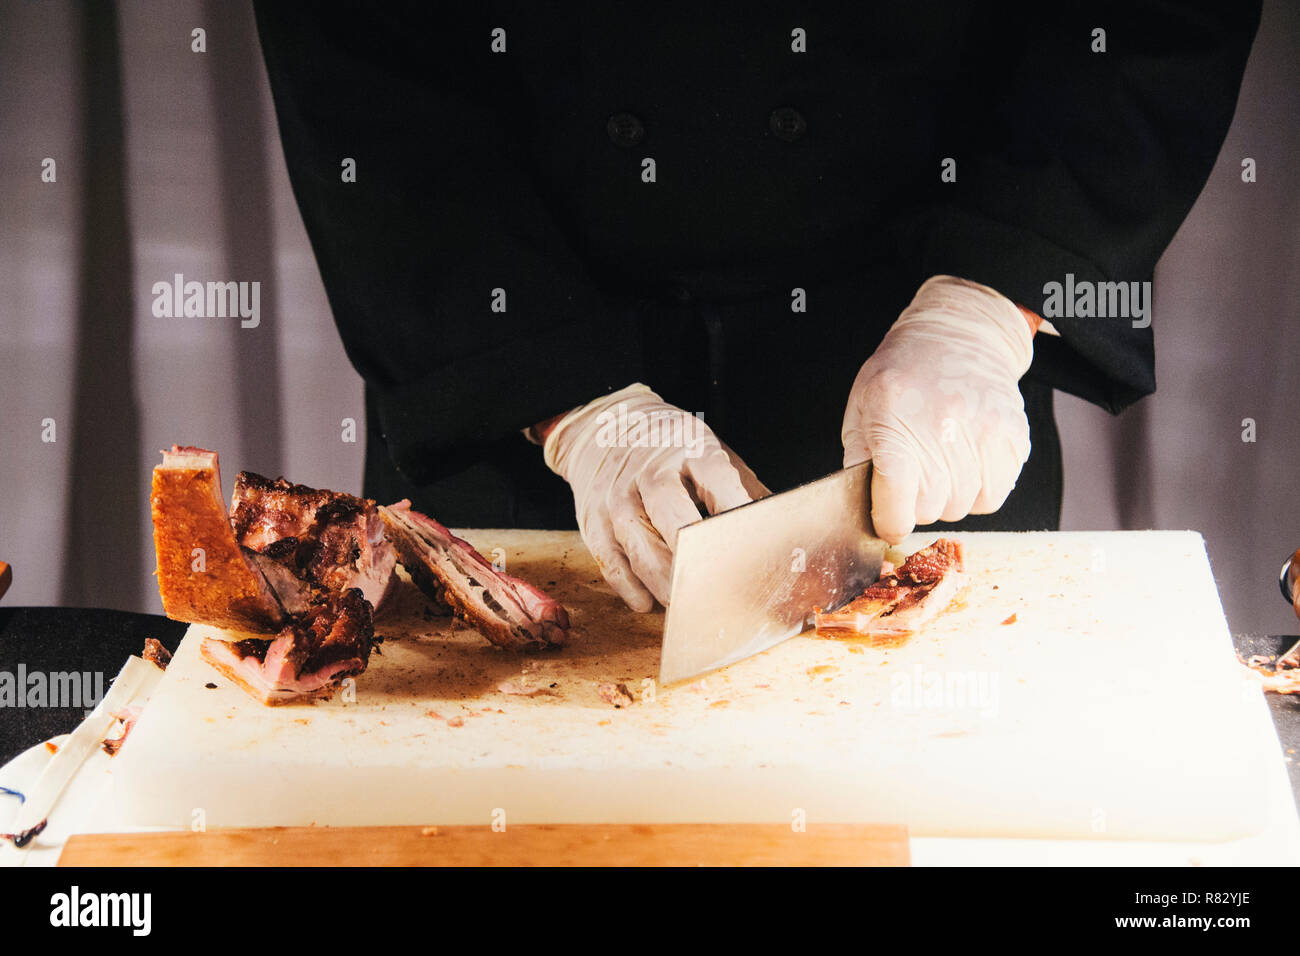 Hands of a male chops roast pork with a cleaver at a holiday party - Stock Image